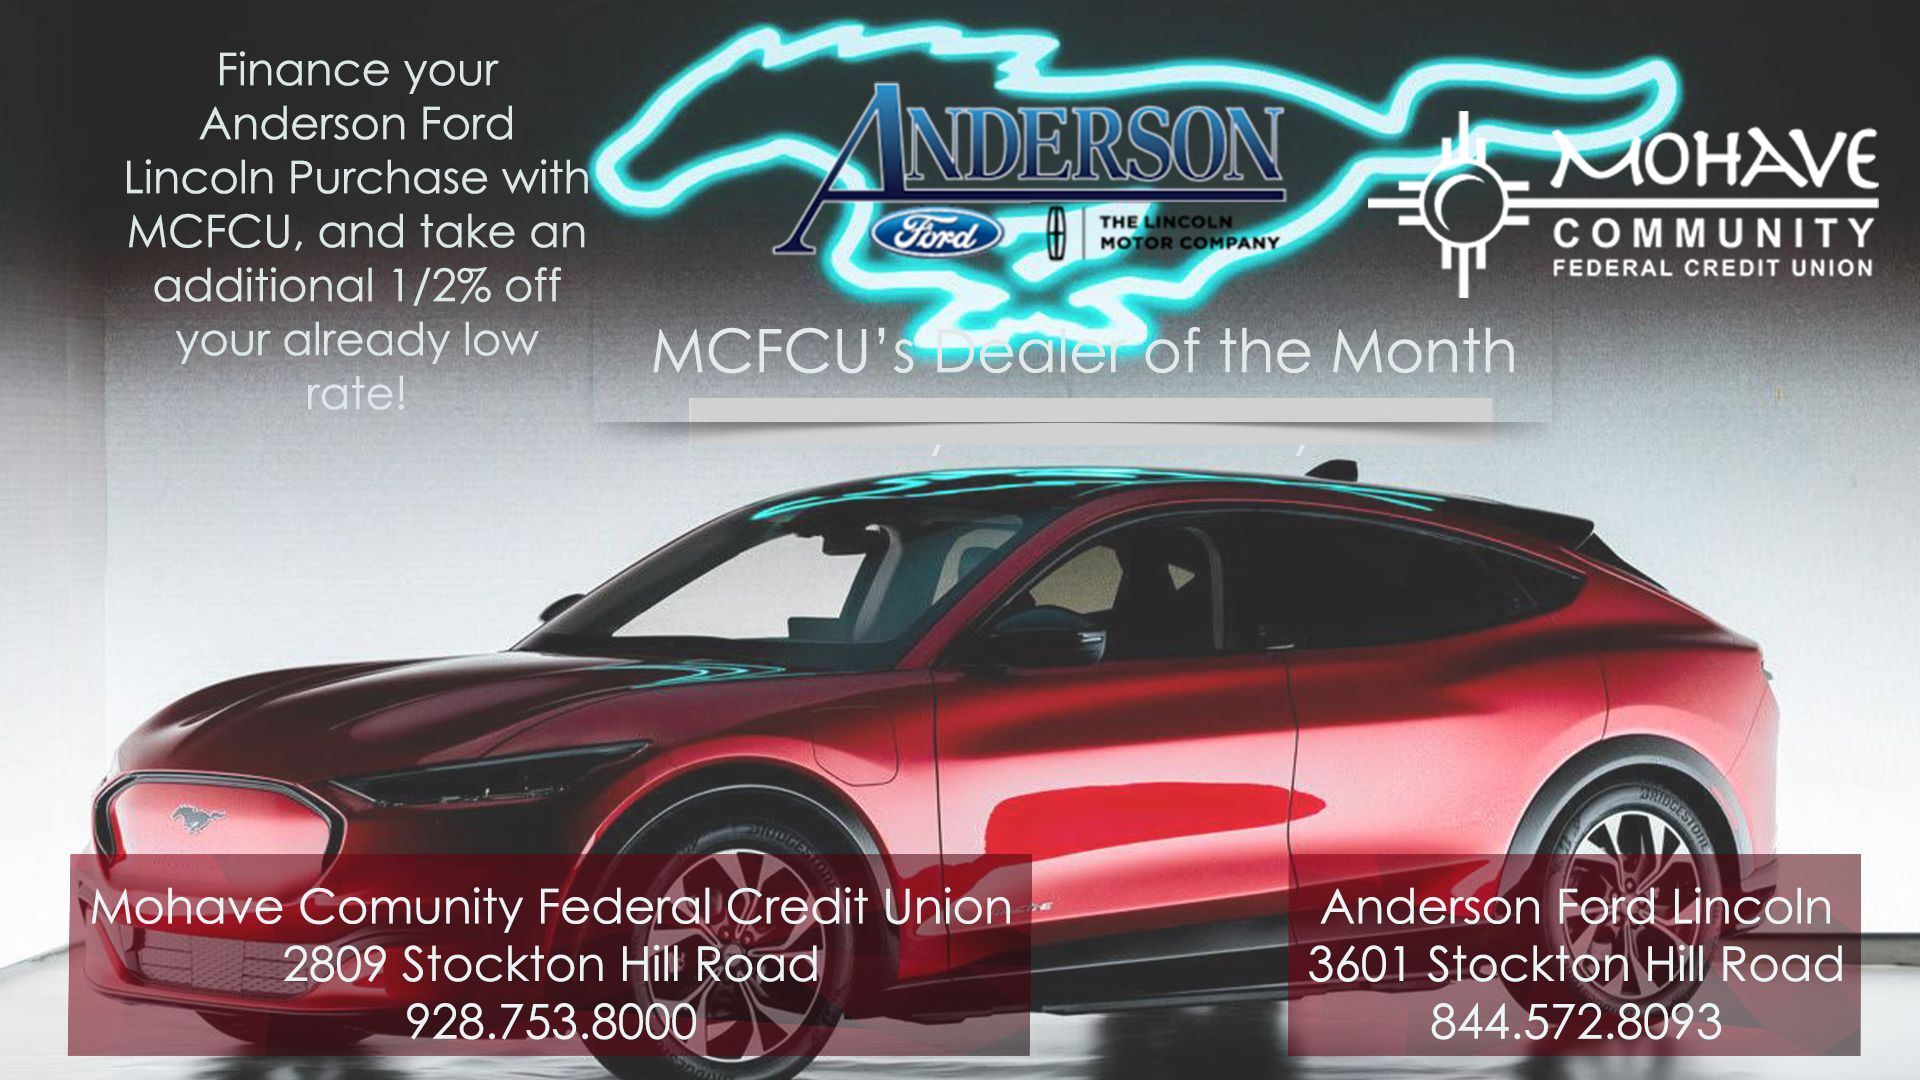 Anderson Ford of Kingman is our dealer of the month! When you finance your Anderson Ford purchase with Mohave Community FCU you will recieve an additional 1/2% off your already low interest rate! All loans are subject to credit approval. Some restrictions may apply. Advertised Annual Percentage Rate (APR) may change without notice. Approval and rates are based upon credit history, type of product, debt to income, loan term and loan to value. Member NCUA.